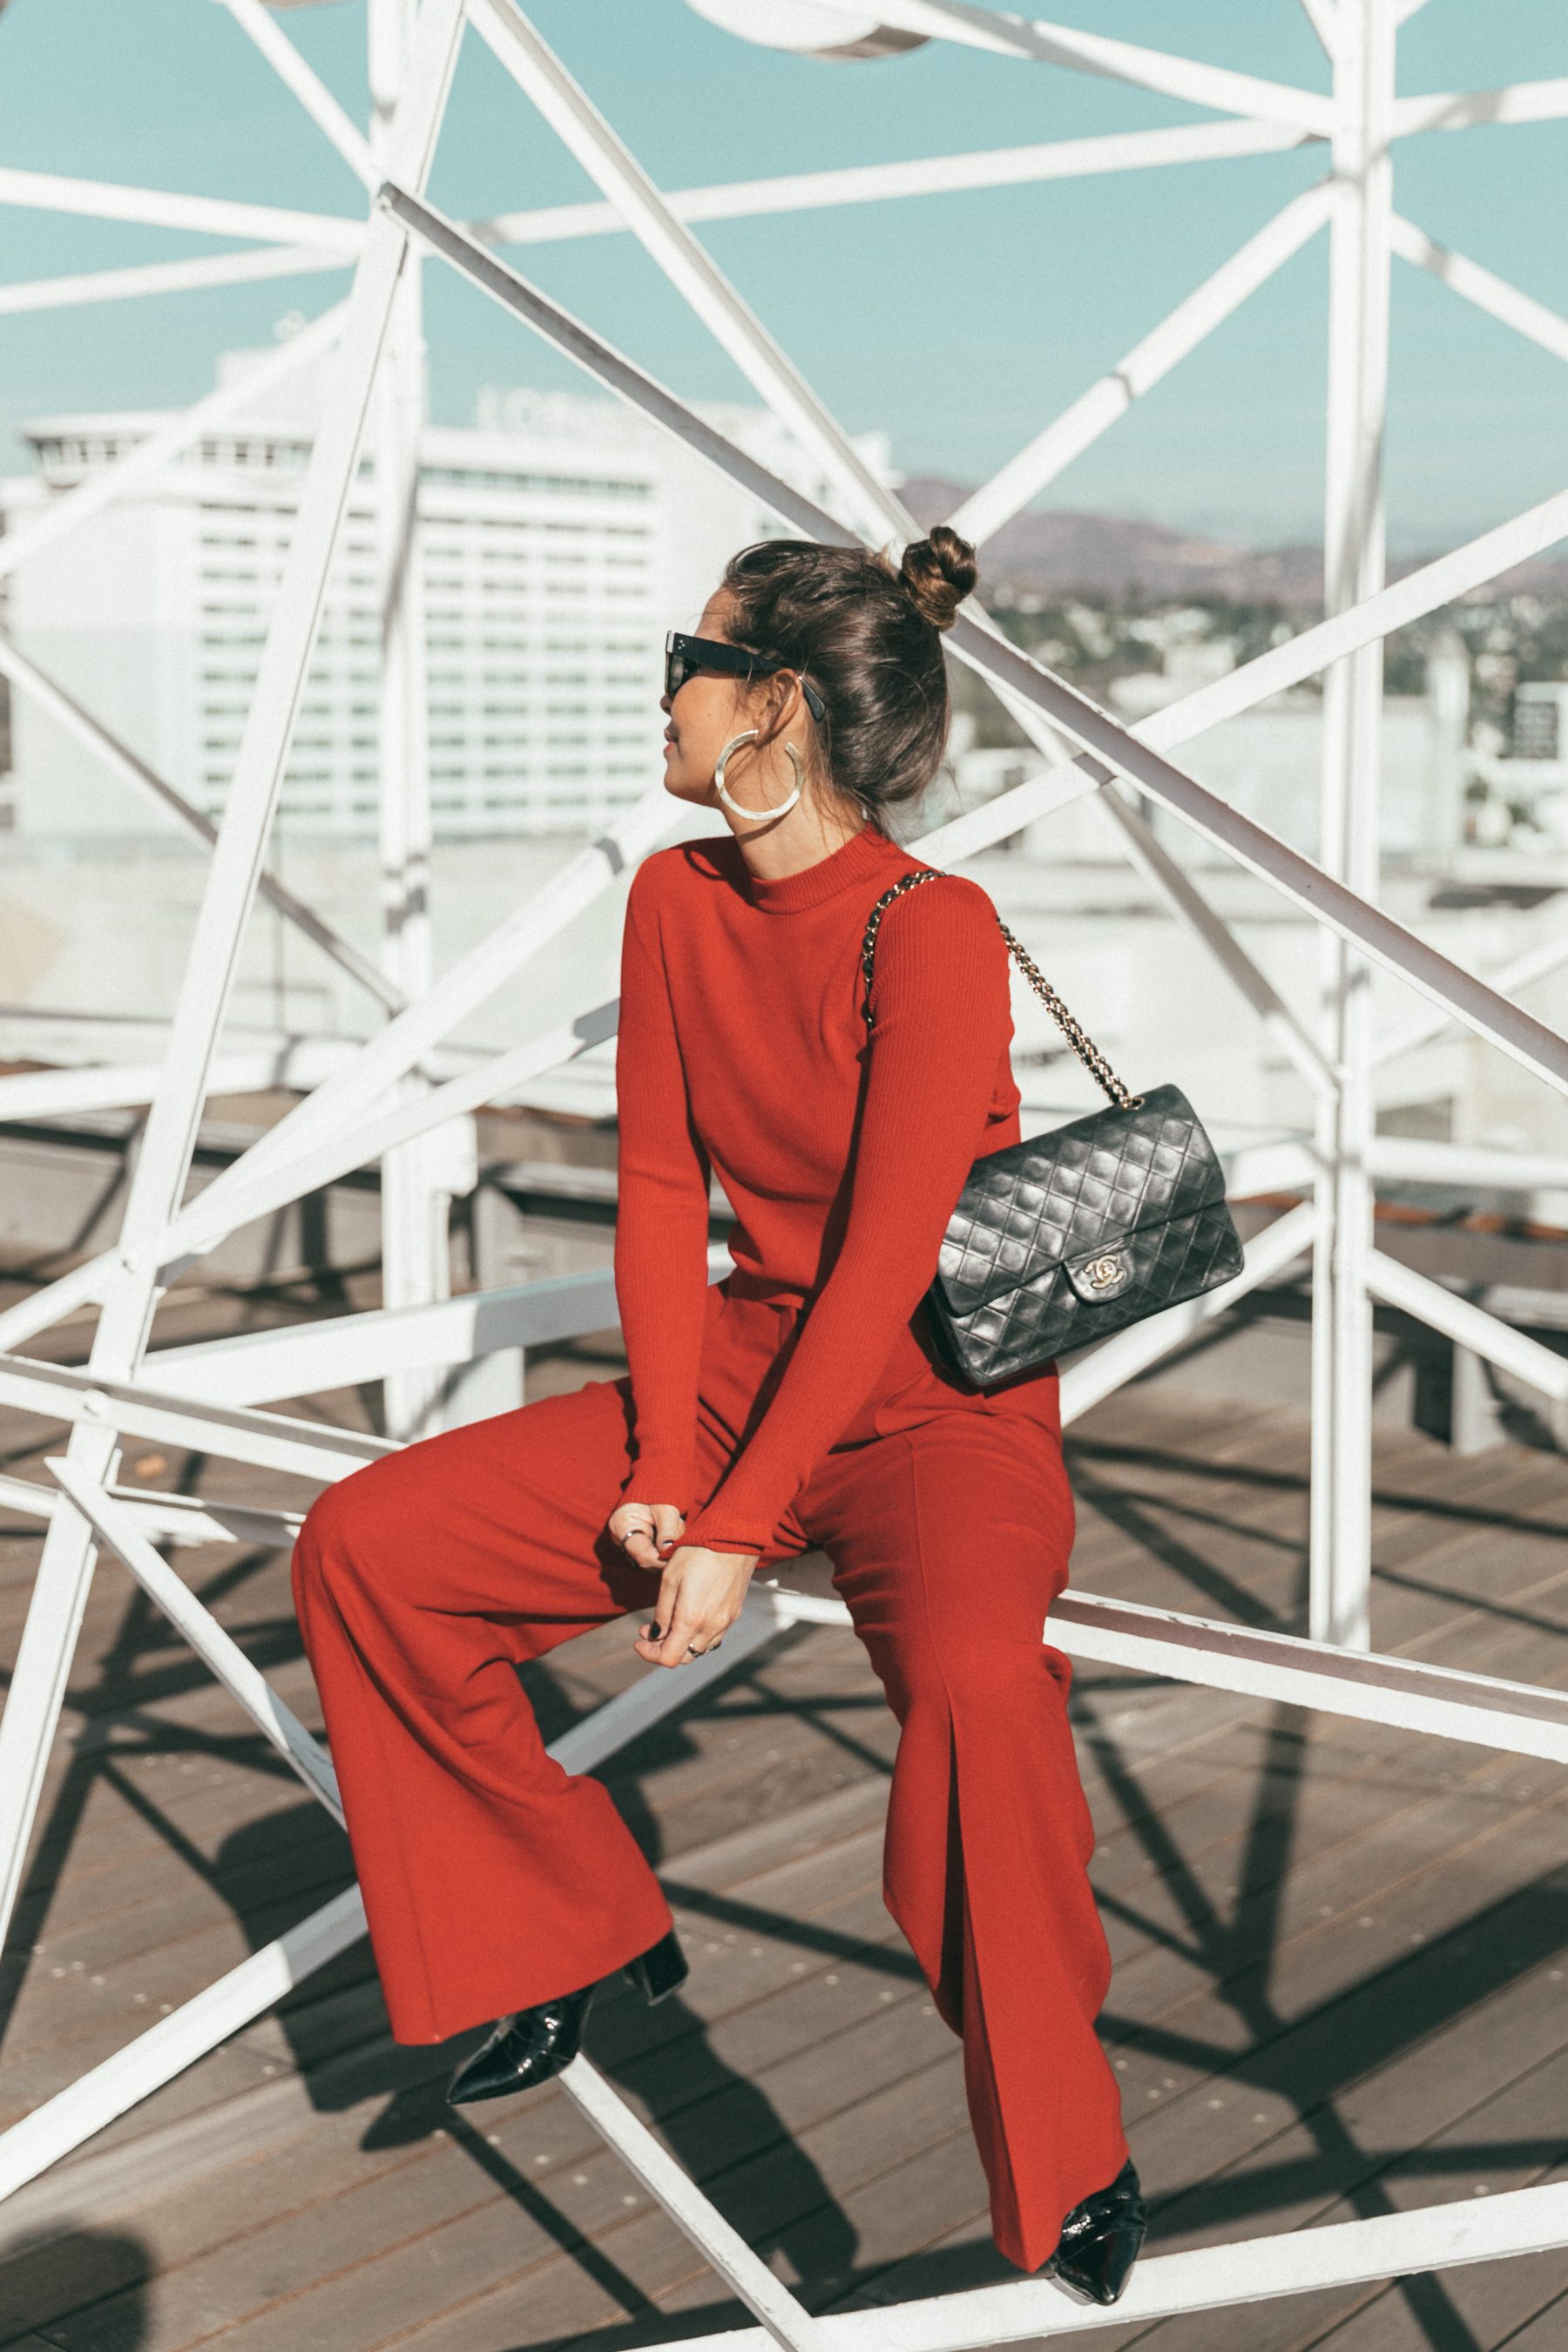 total_red_look-hm_studio-outfit-roosevelt_hotel-los_angeles-la-collage_vintage-street_style-chanel_bag-175